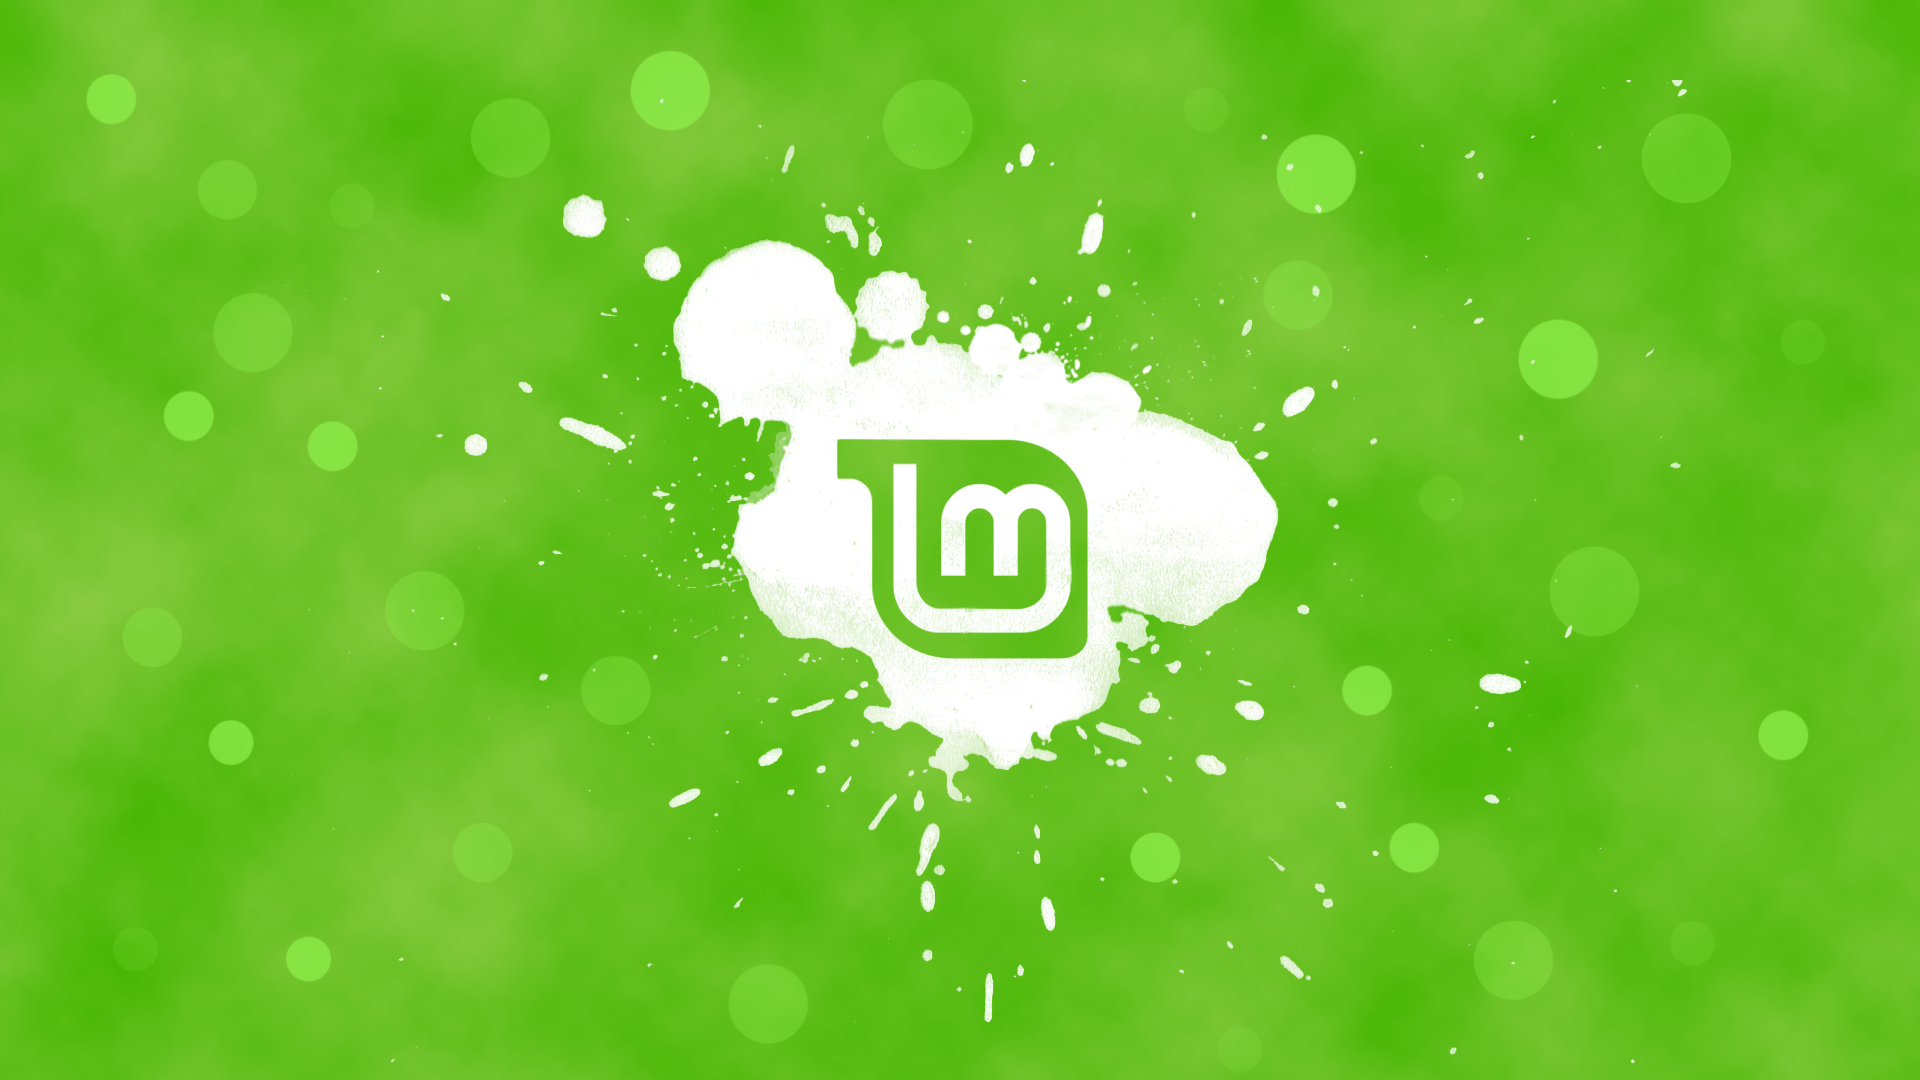 Linux Mint Cinnamon Wallpaper | Linux Wallpaper #